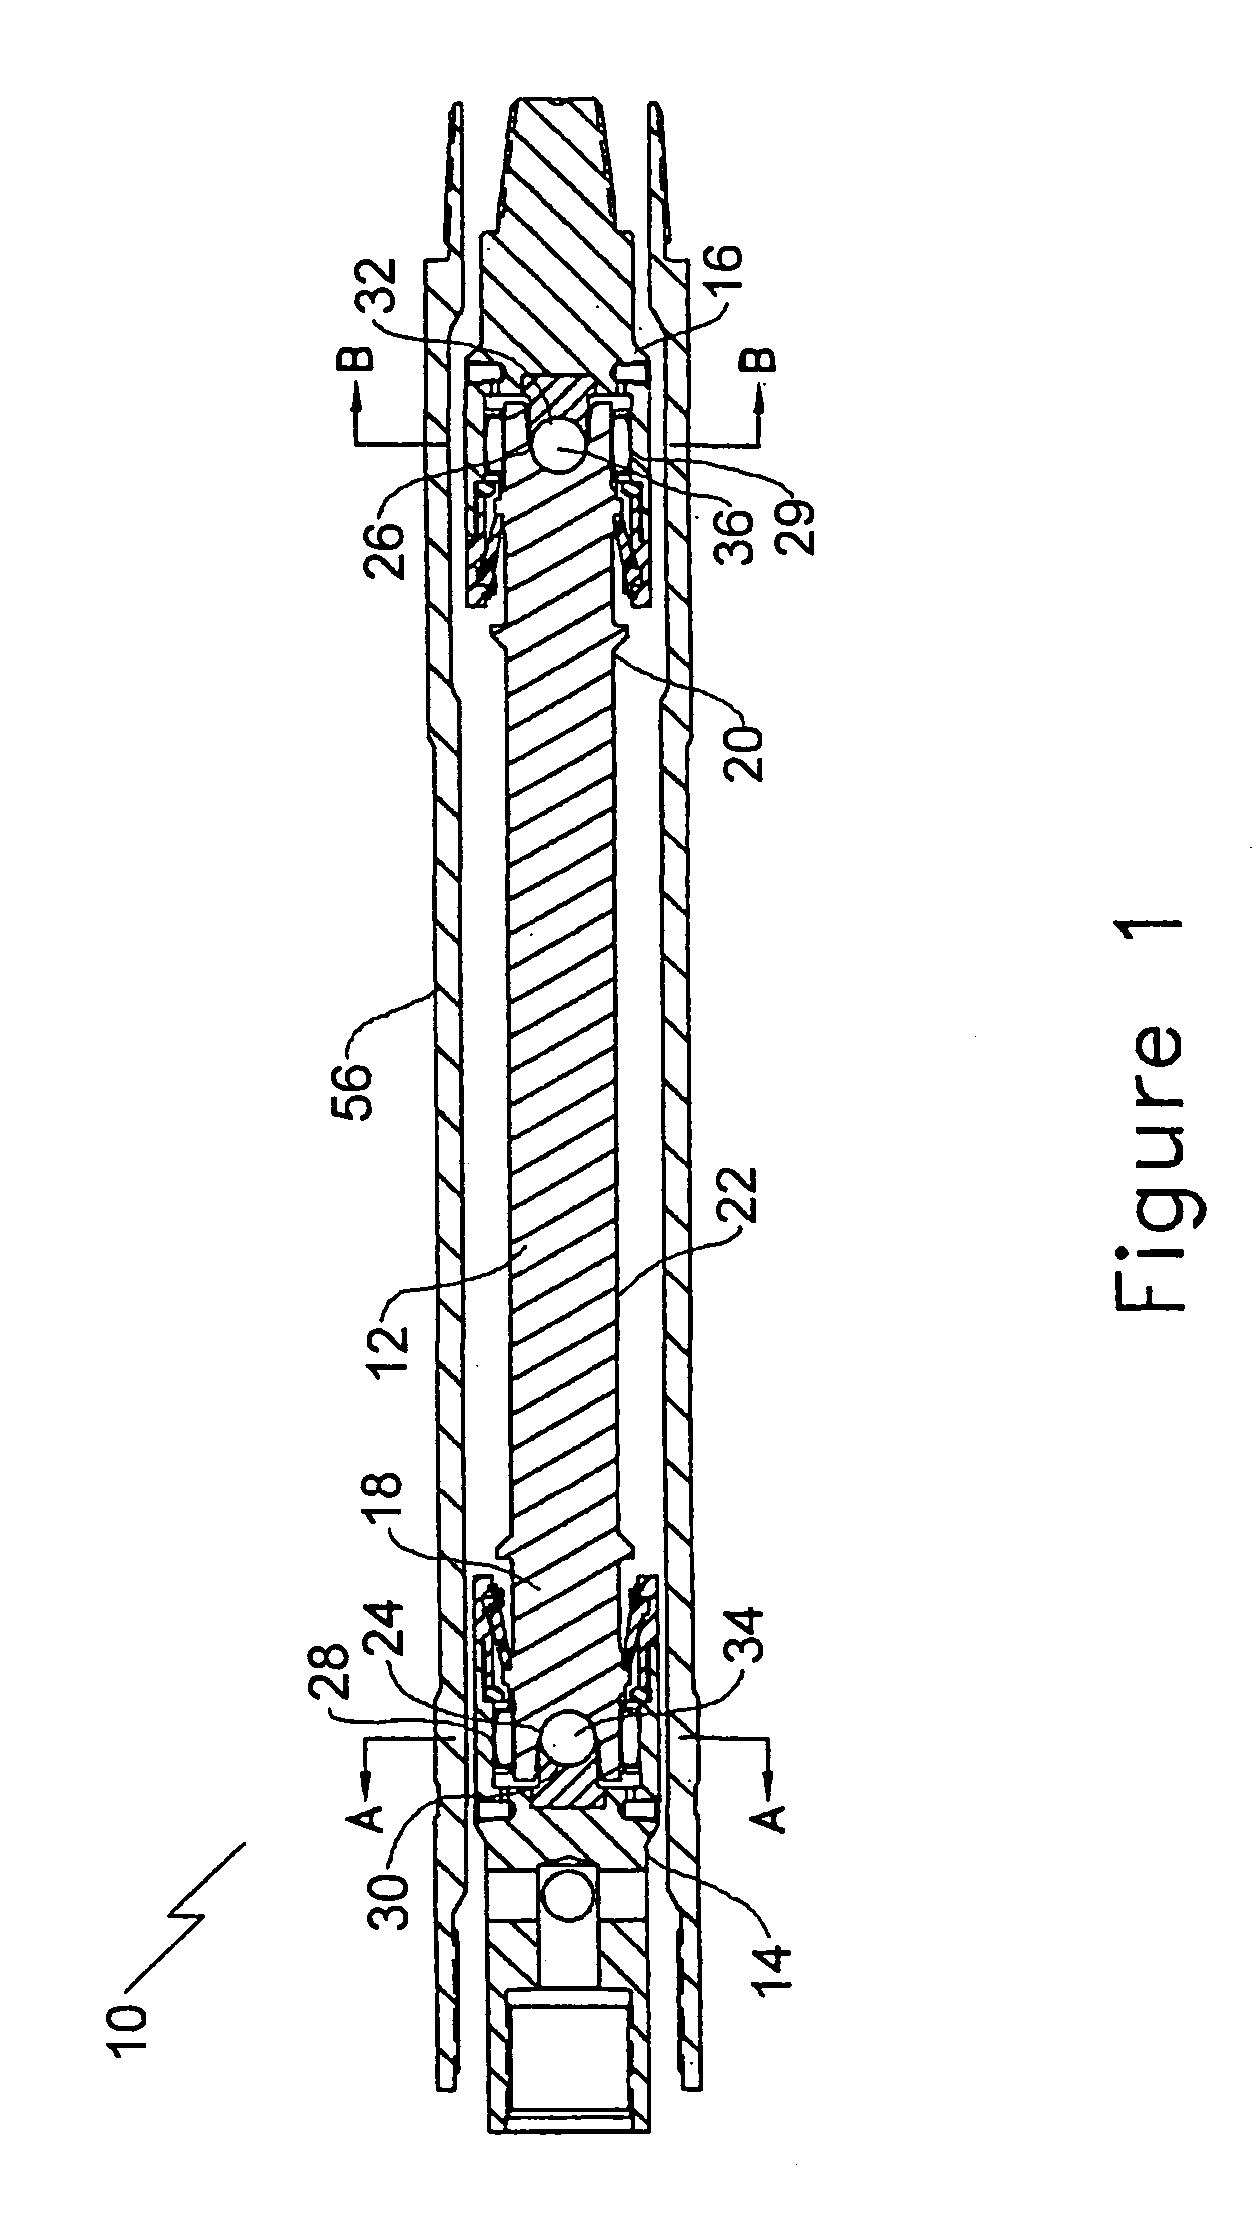 US7186182 as well B2fg0bk3 likewise Removing and installing differential together with B2fg0bk3 besides Meyer E 47. on what is the purpose of a drive shaft